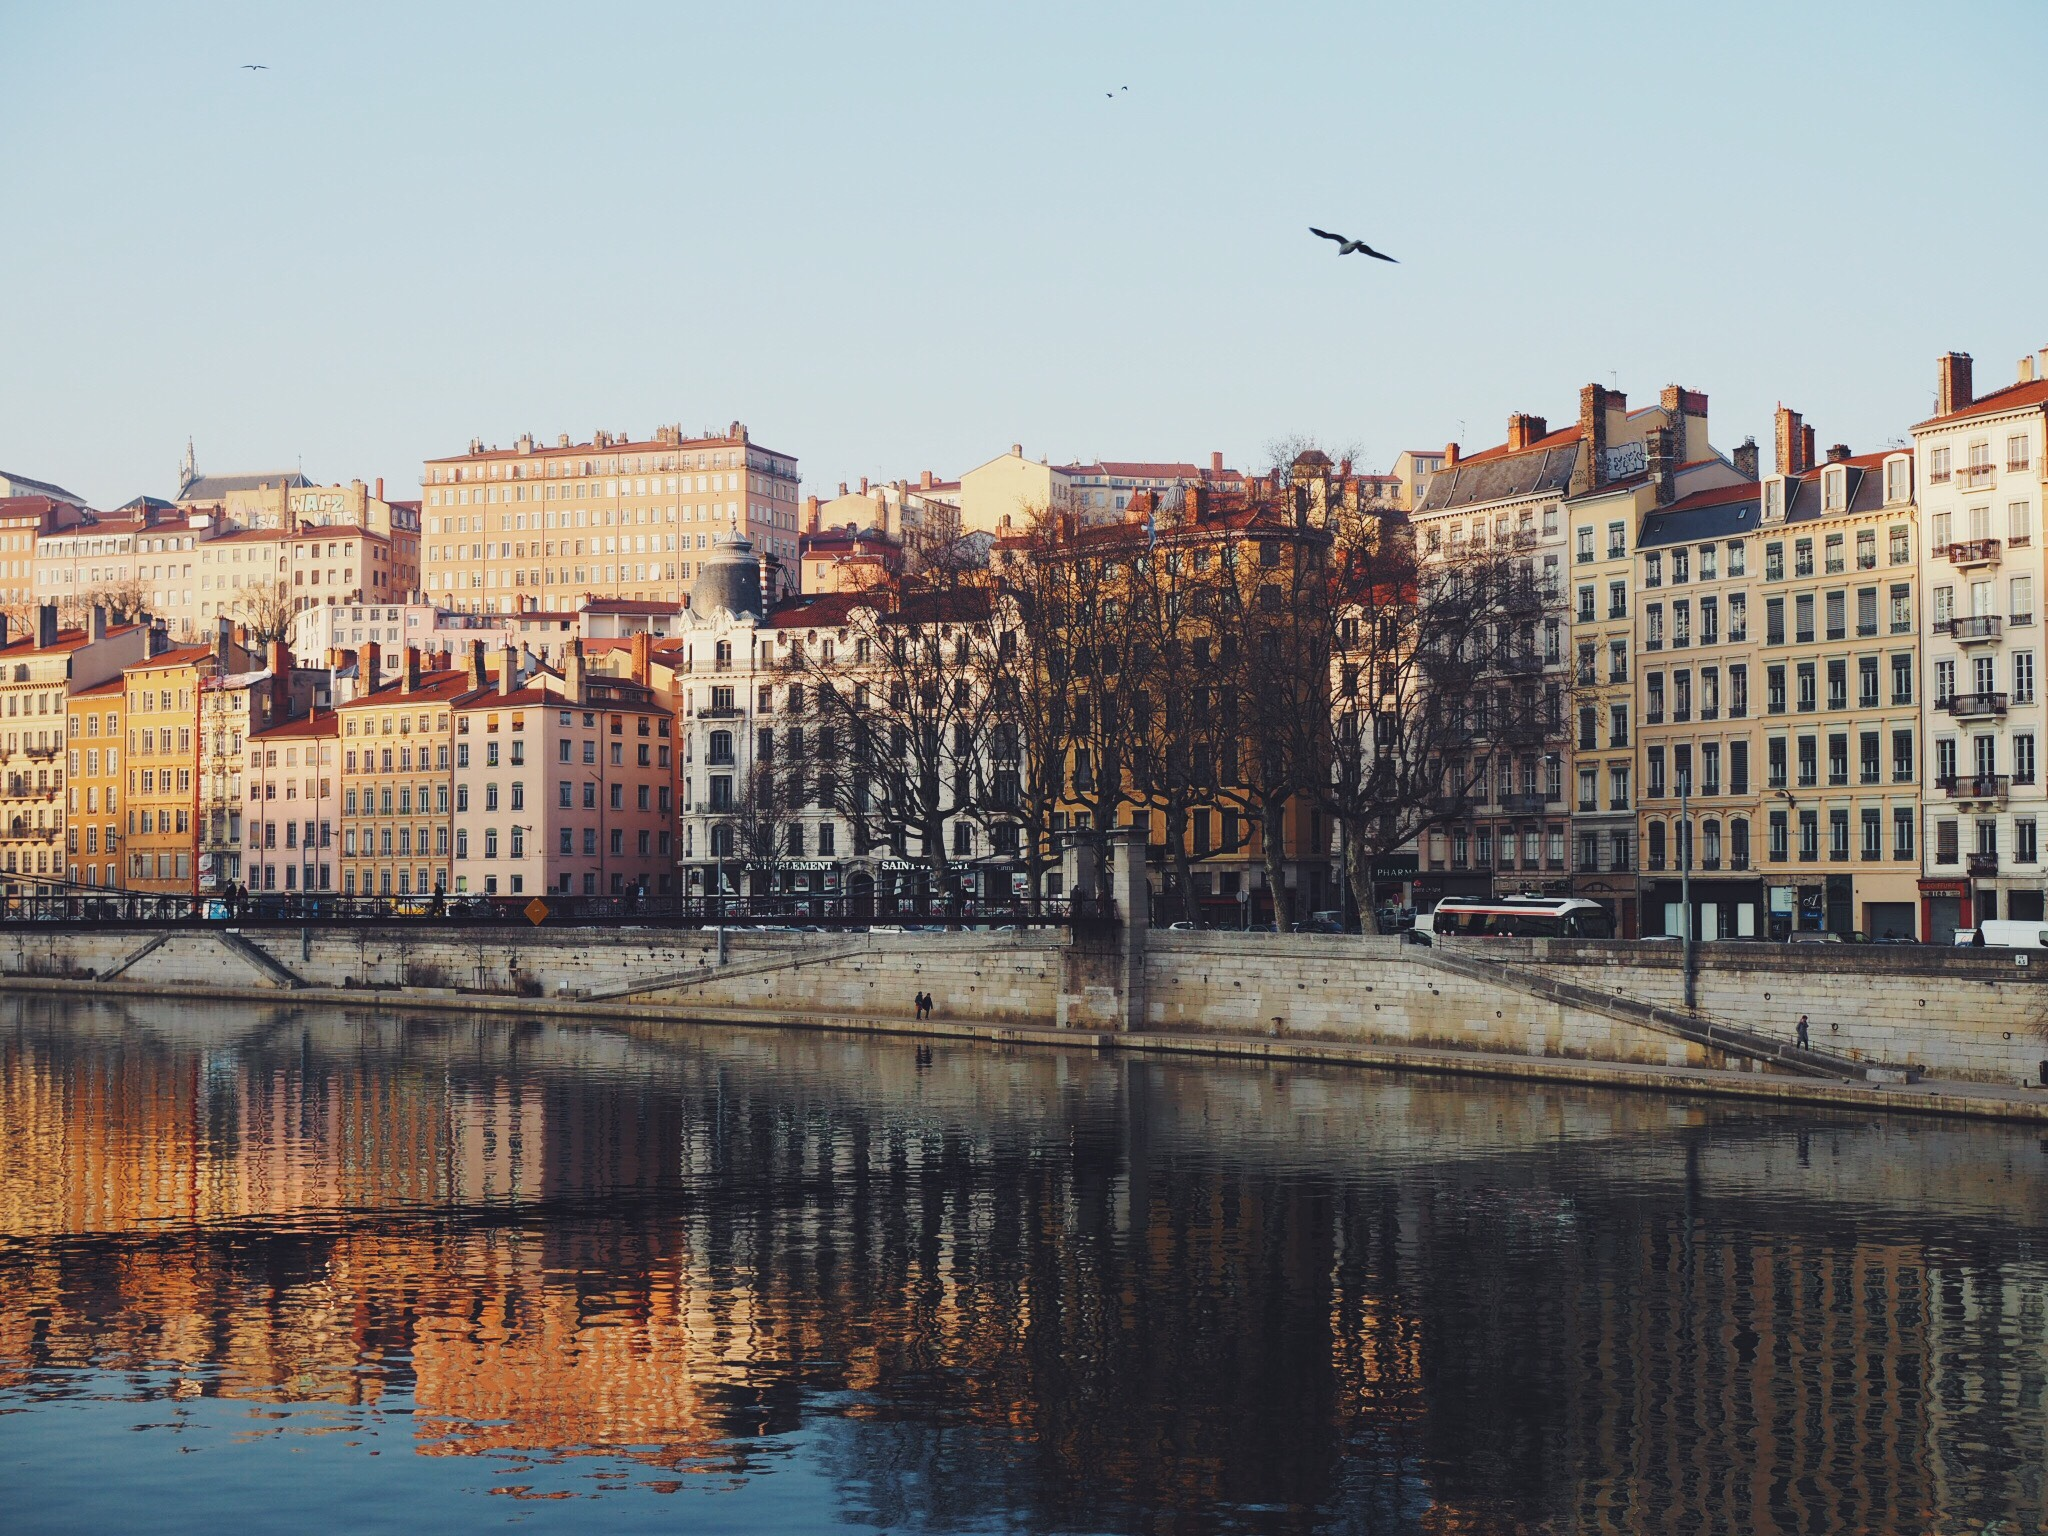 Over looking the Saône River